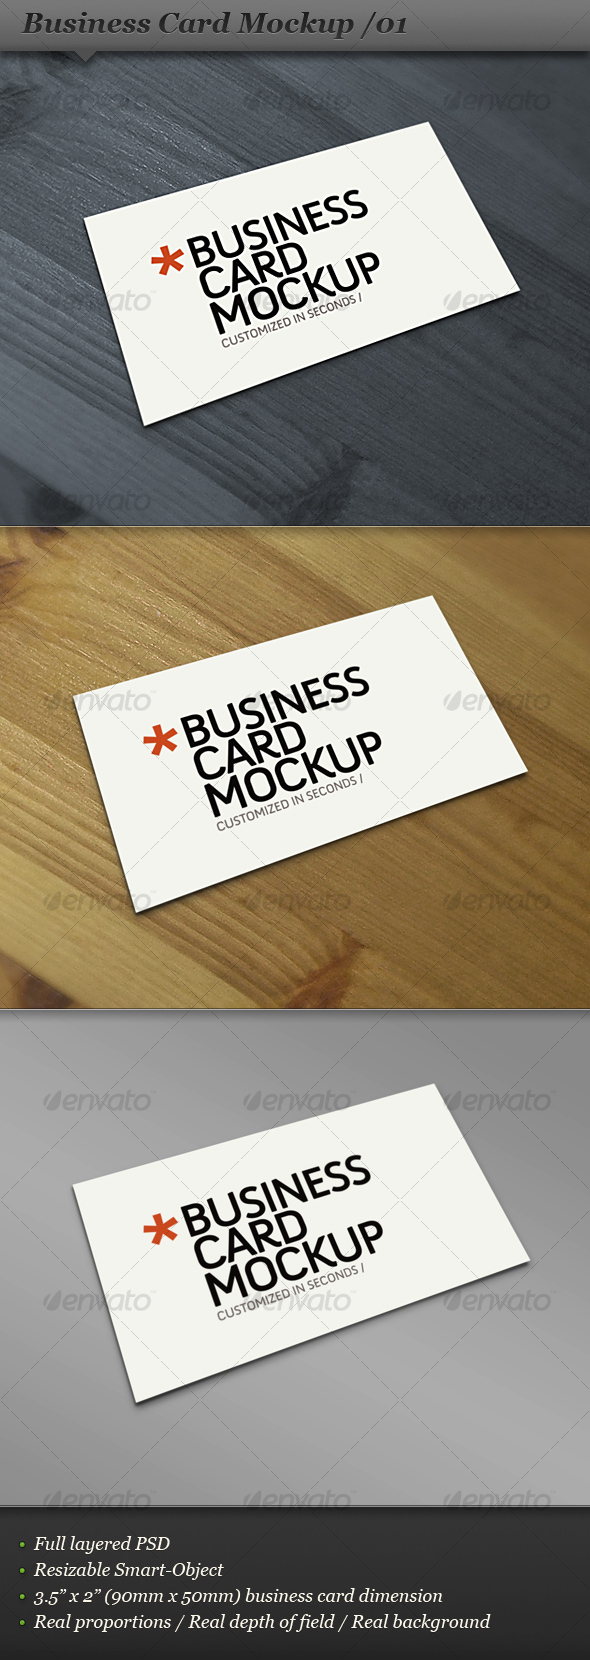 Business card mockup display - Smart template 01 - Business Cards Print